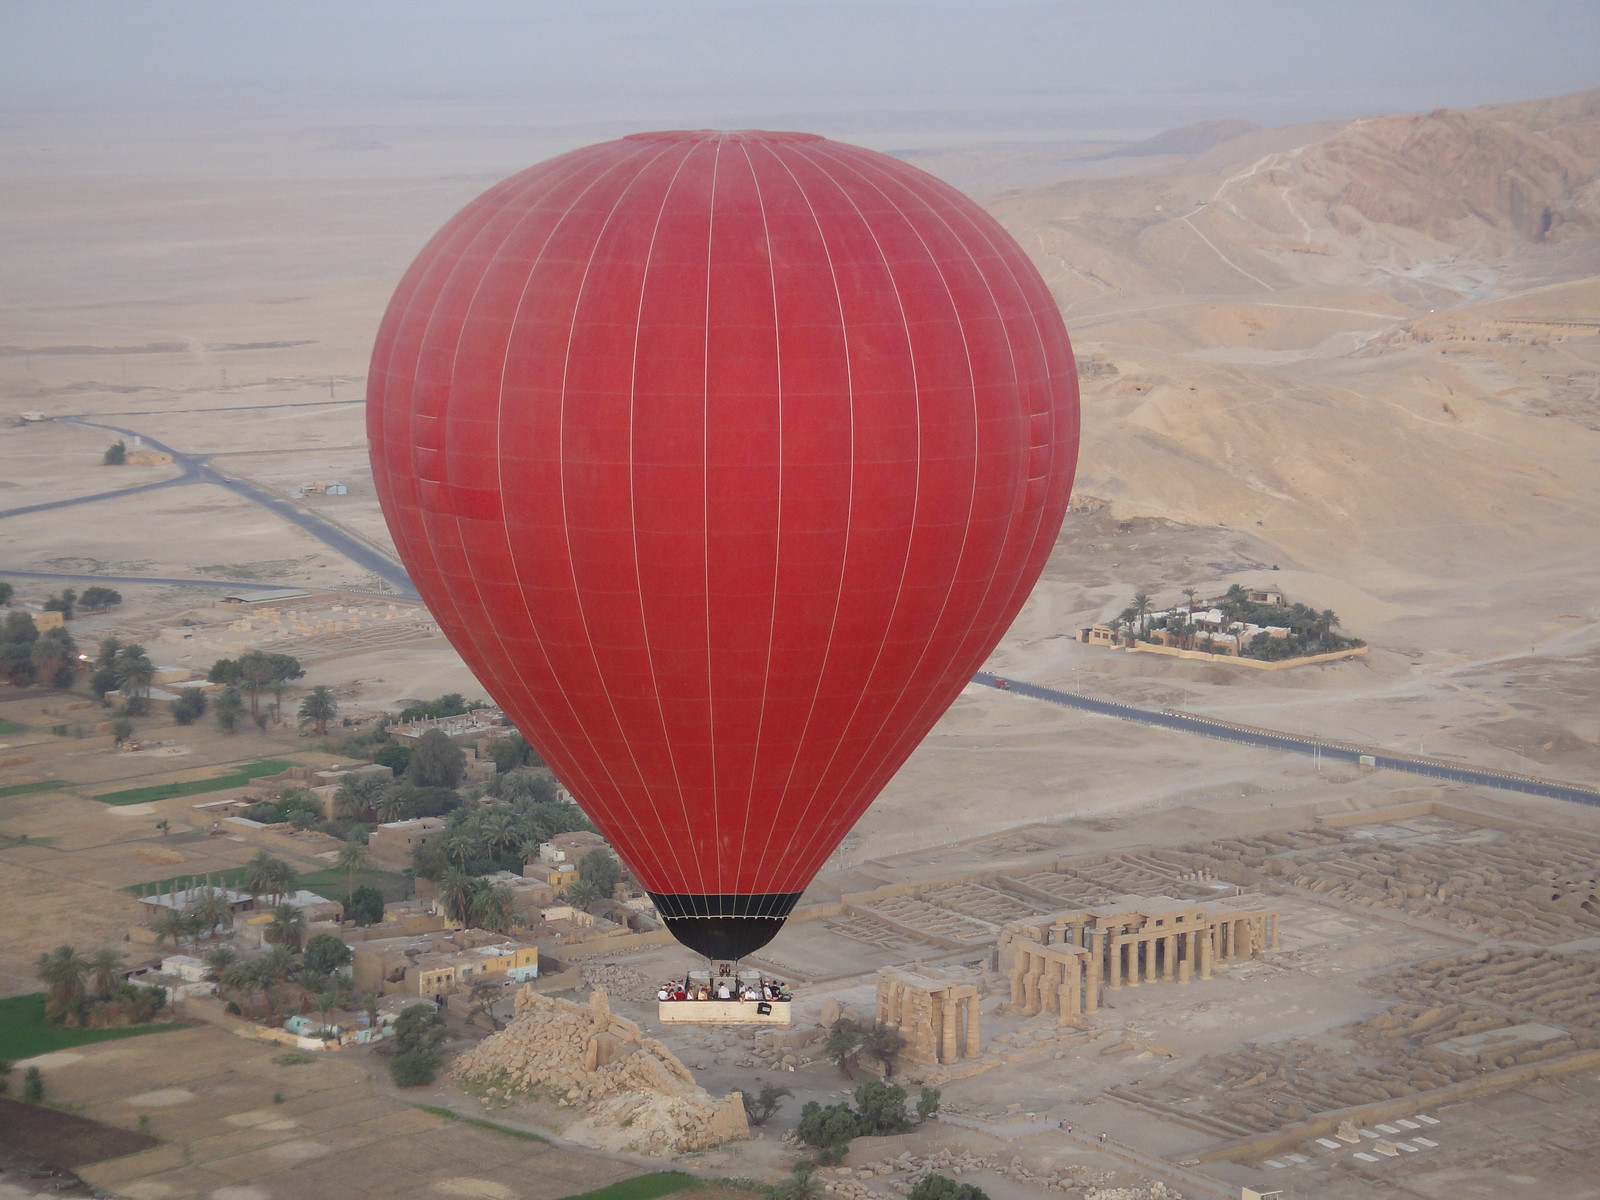 Sunrise hot air balloon ride over Valley of the Kings (Eygpt)